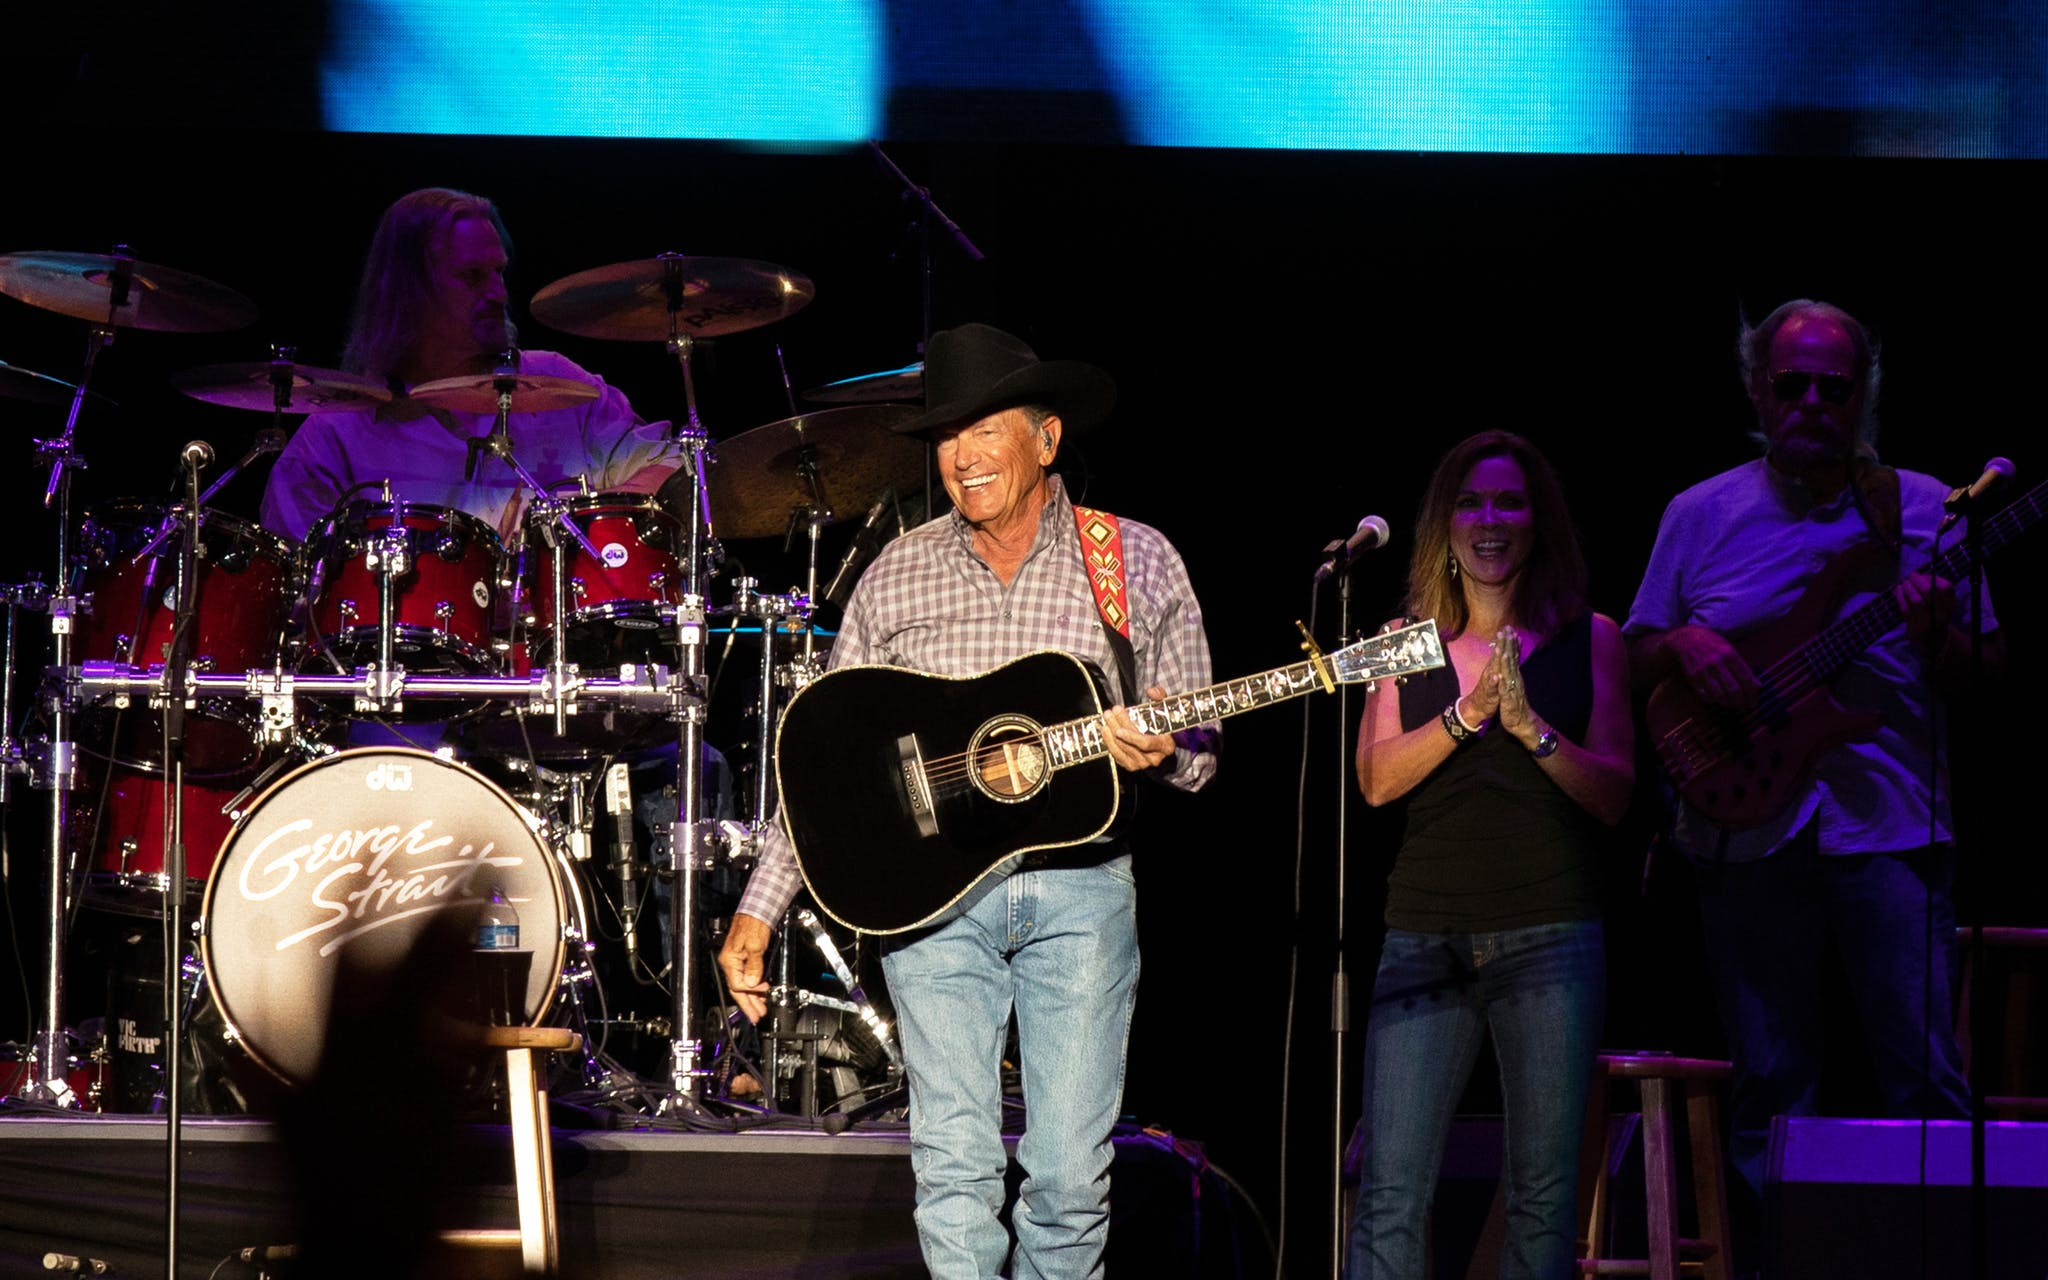 George Strait at ACL 2021.